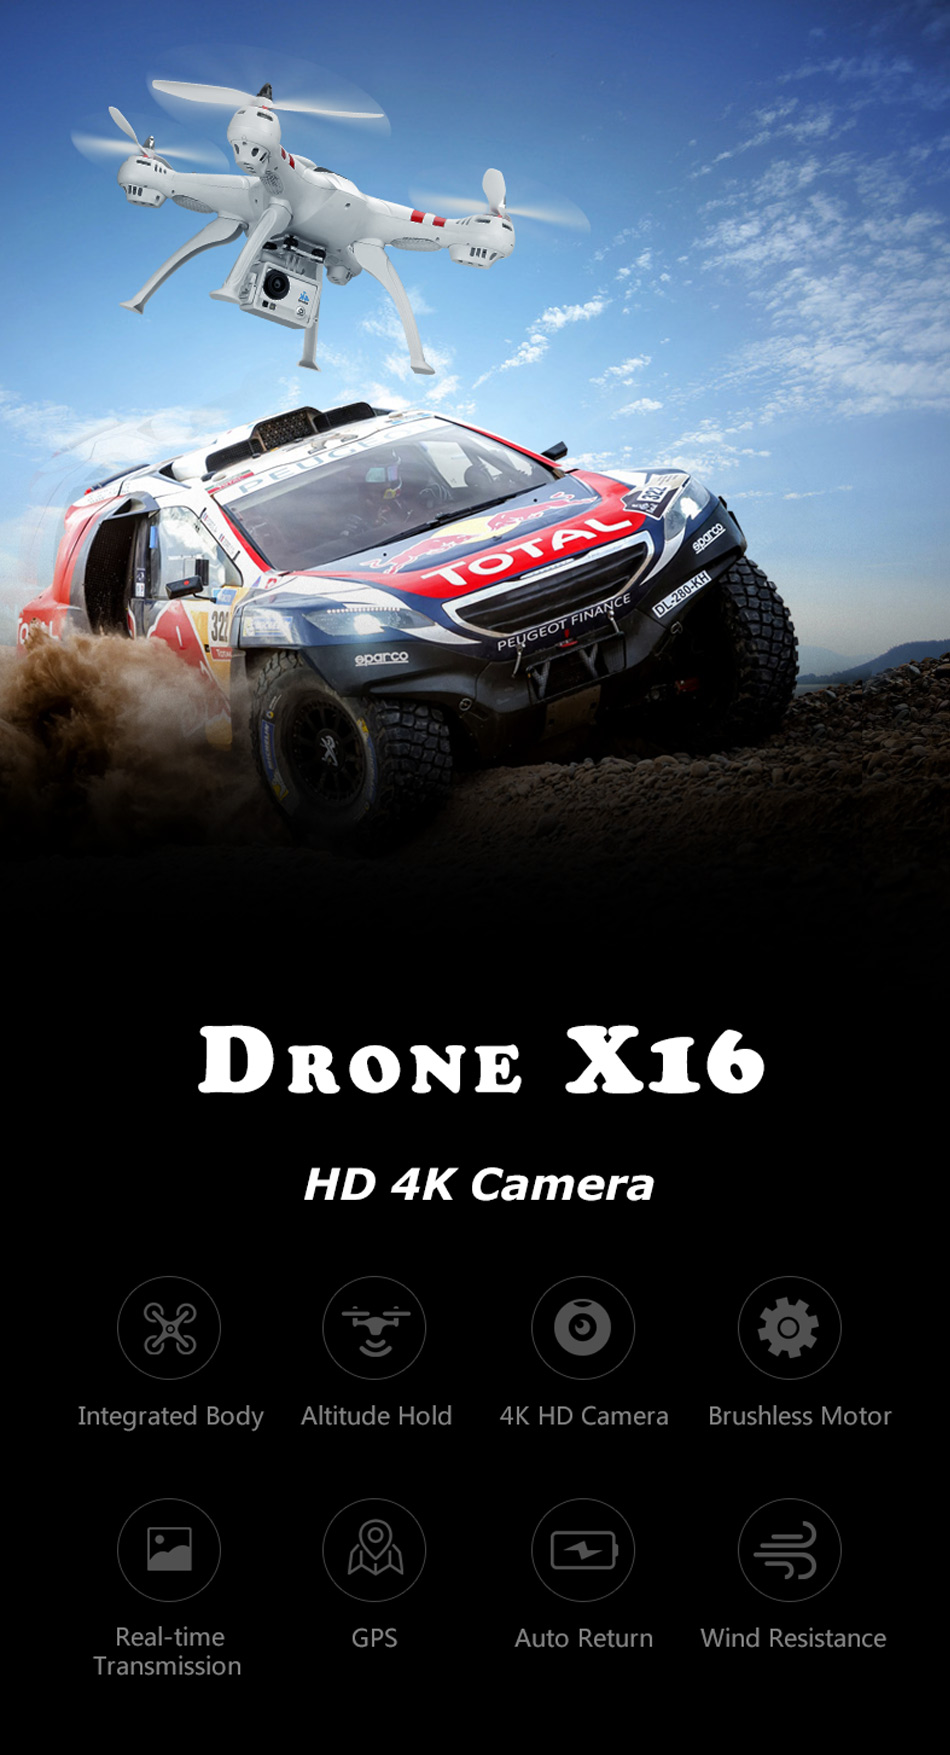 X16 rc drones with camera hd dron GPS height 500 meters fly distance Fpv quadcopter rc helicopter Brushless Motor 4K 1600W Toys 5